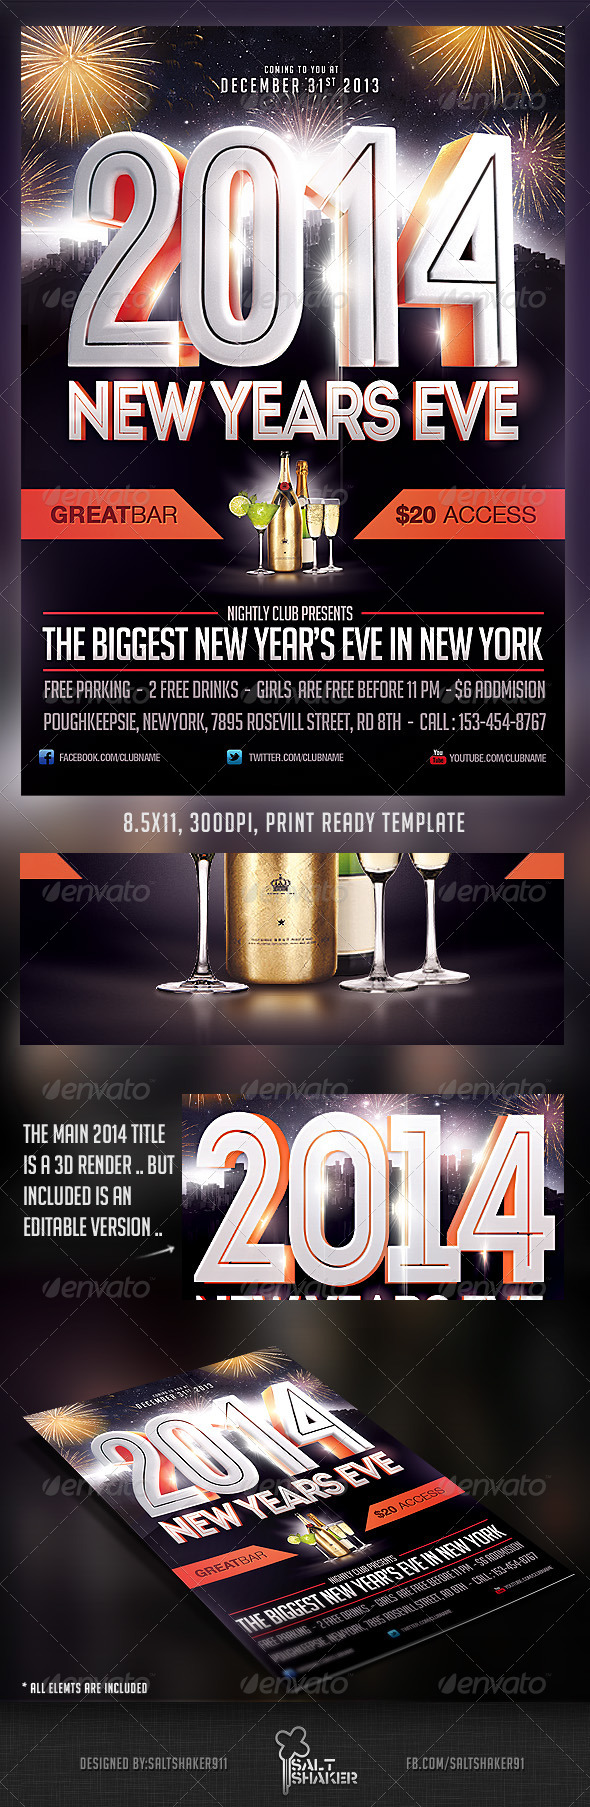 GraphicRiver 2014 New Years Eve Flyer Template 6136251